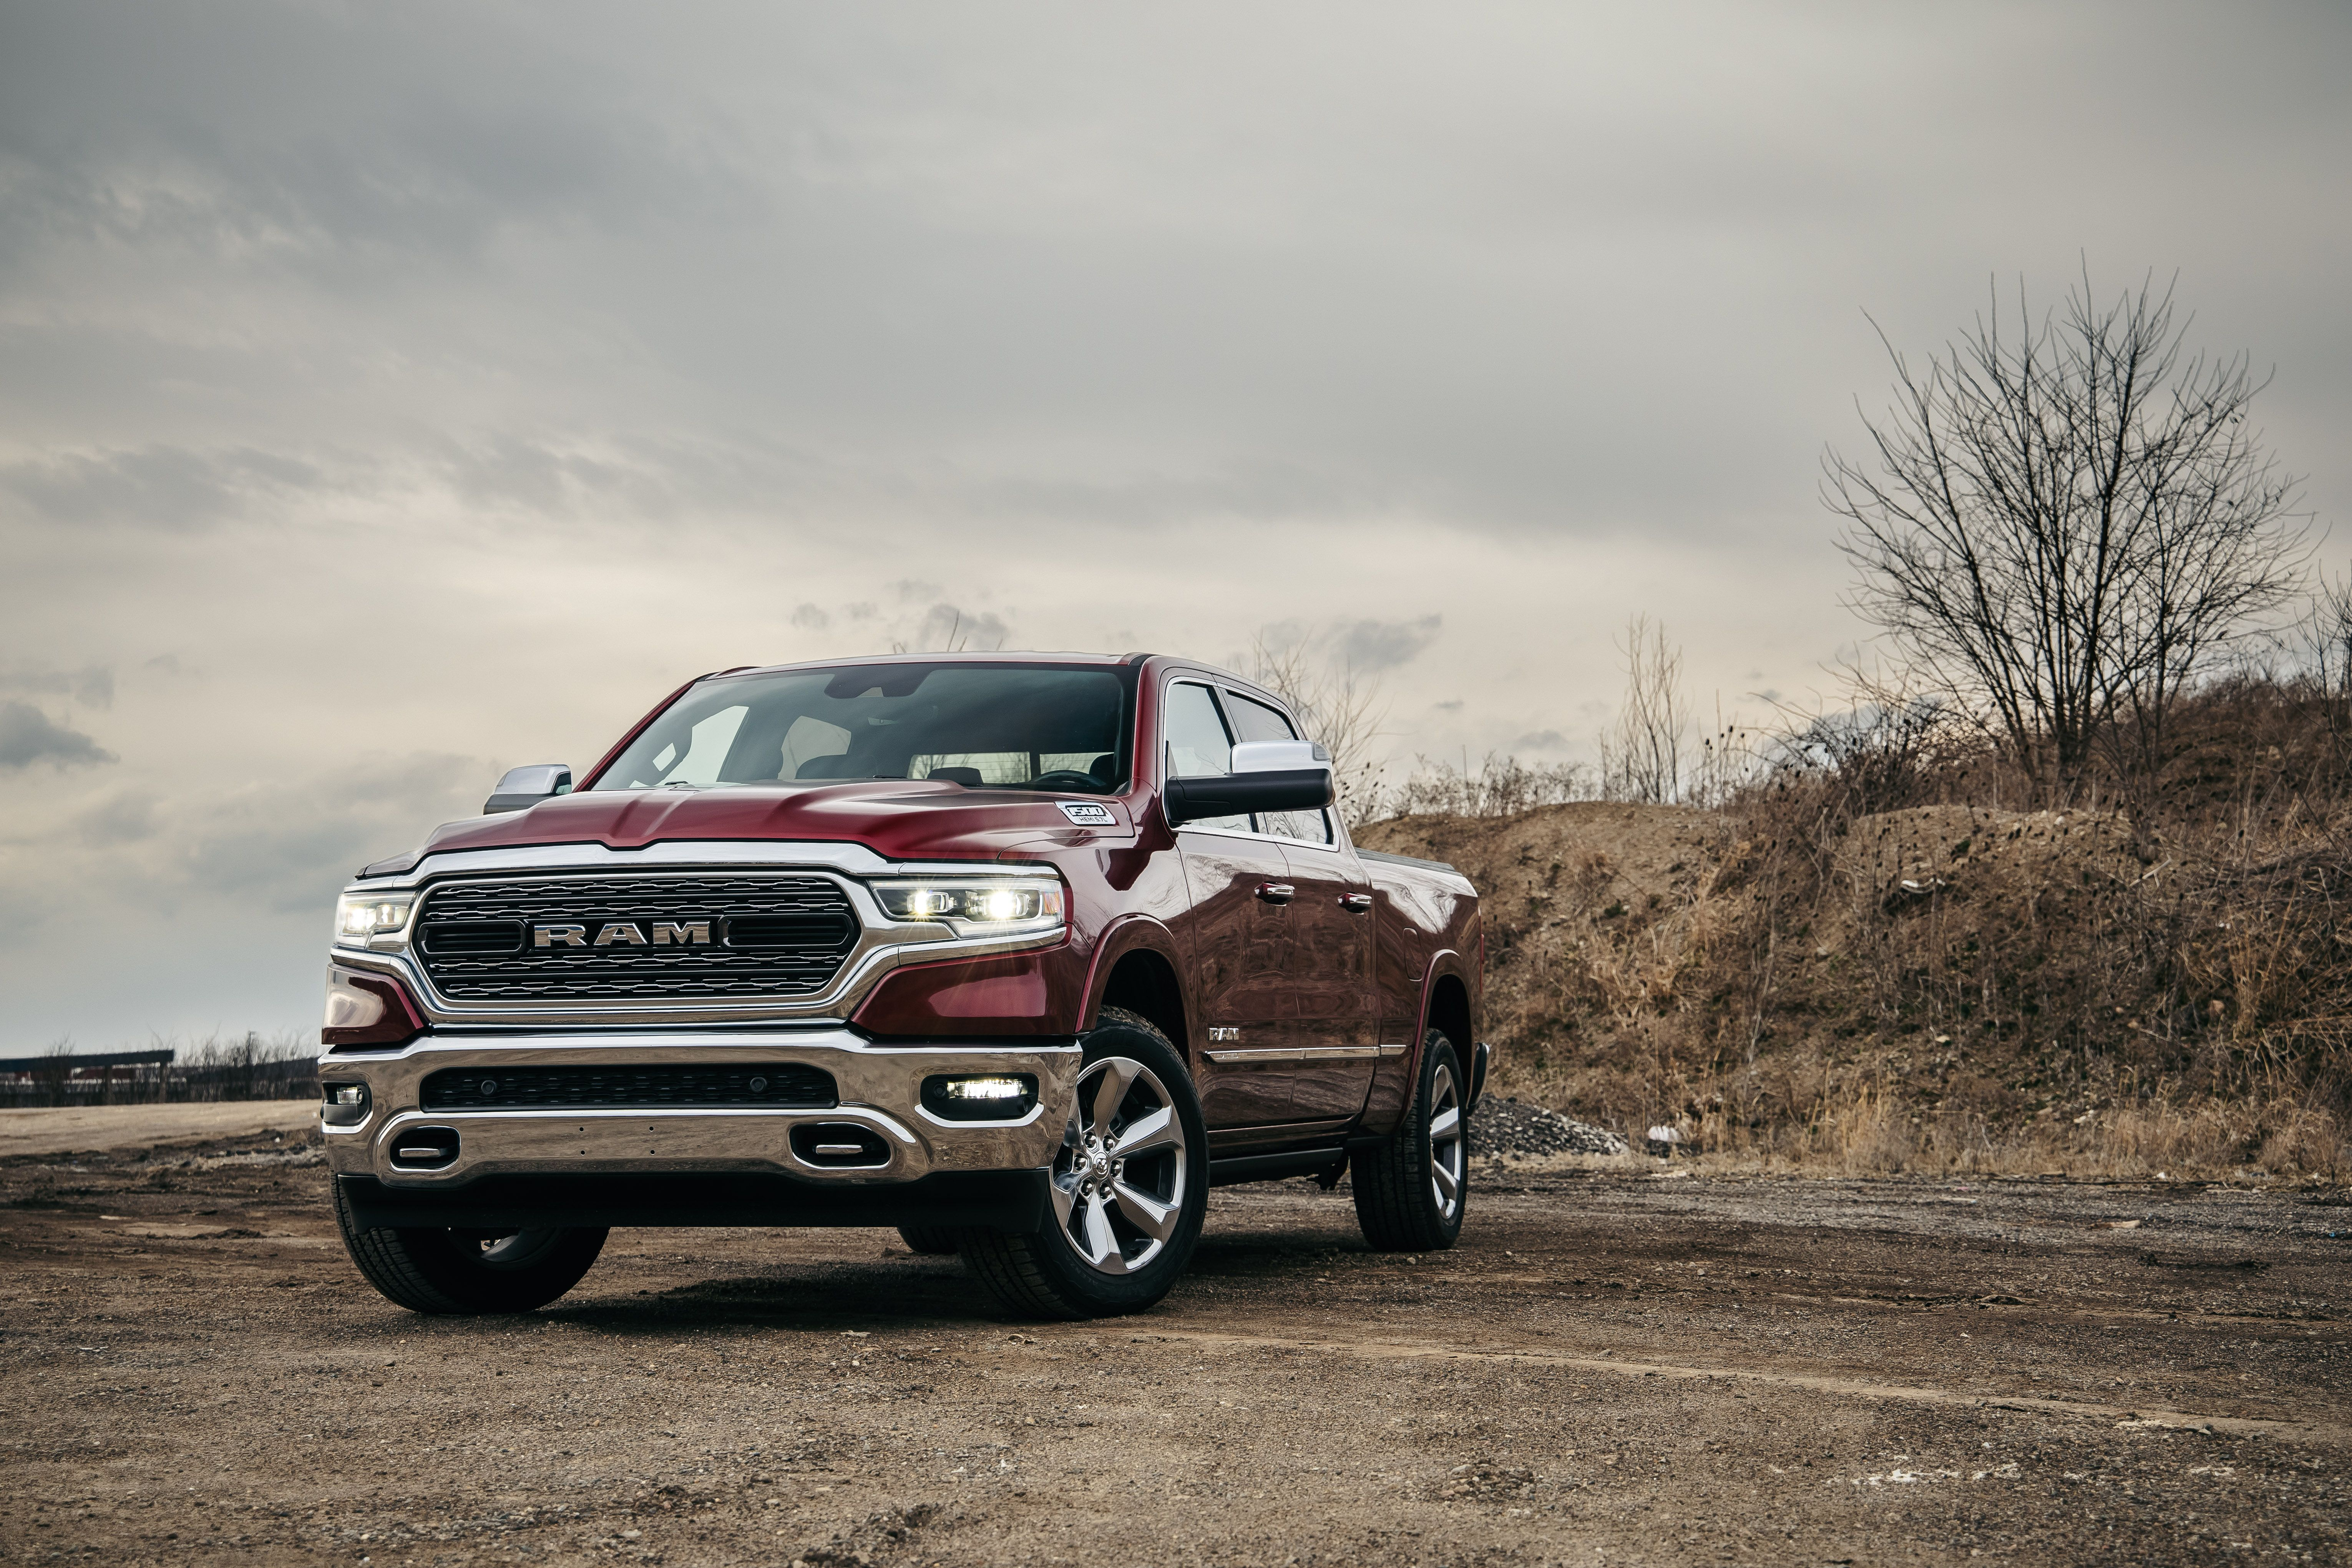 How Reliable Is the 2019 Ram 1500?